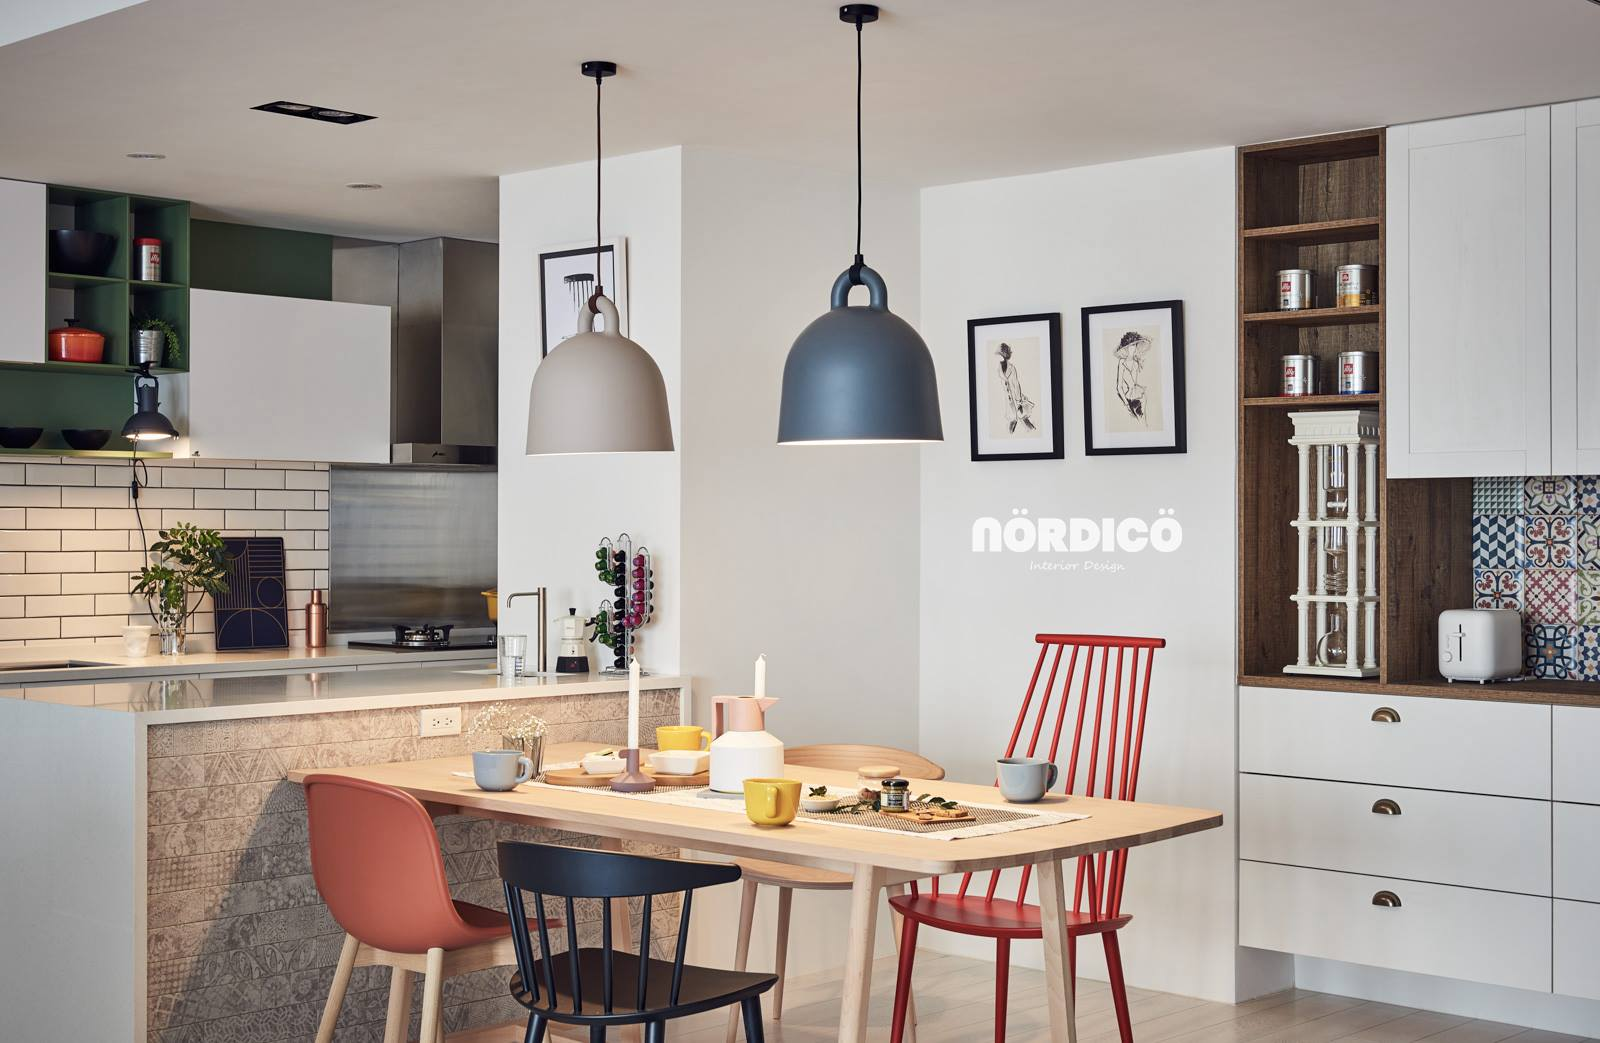 Playful Nordic Dining Arrangement With Mismatched Chairs - Nordic decor inspiration in two colorful homes